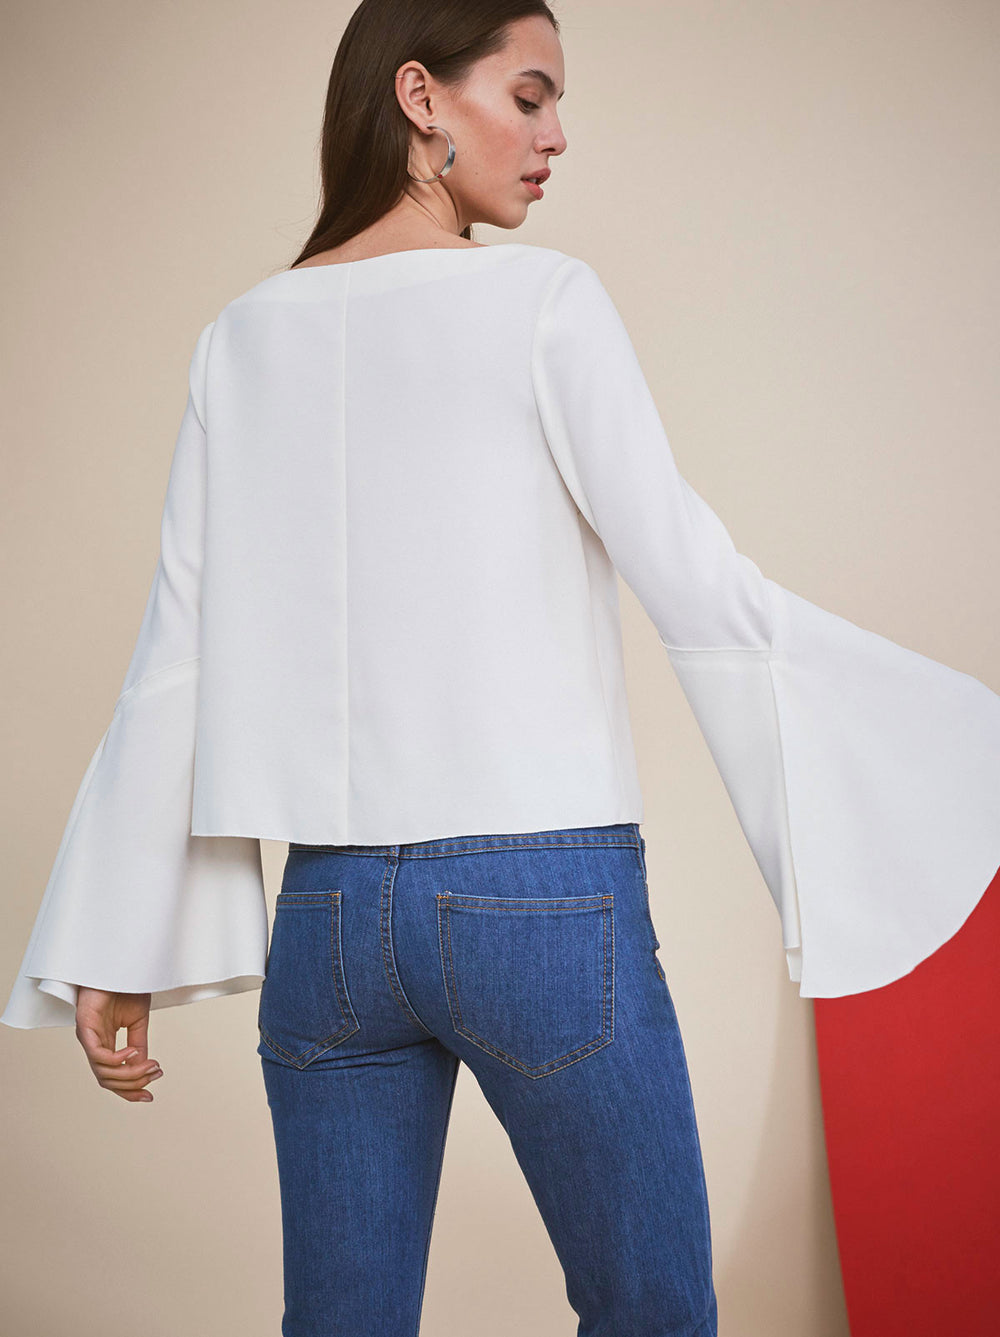 Giselle White Bell Sleeve Blouse by KITRI studio